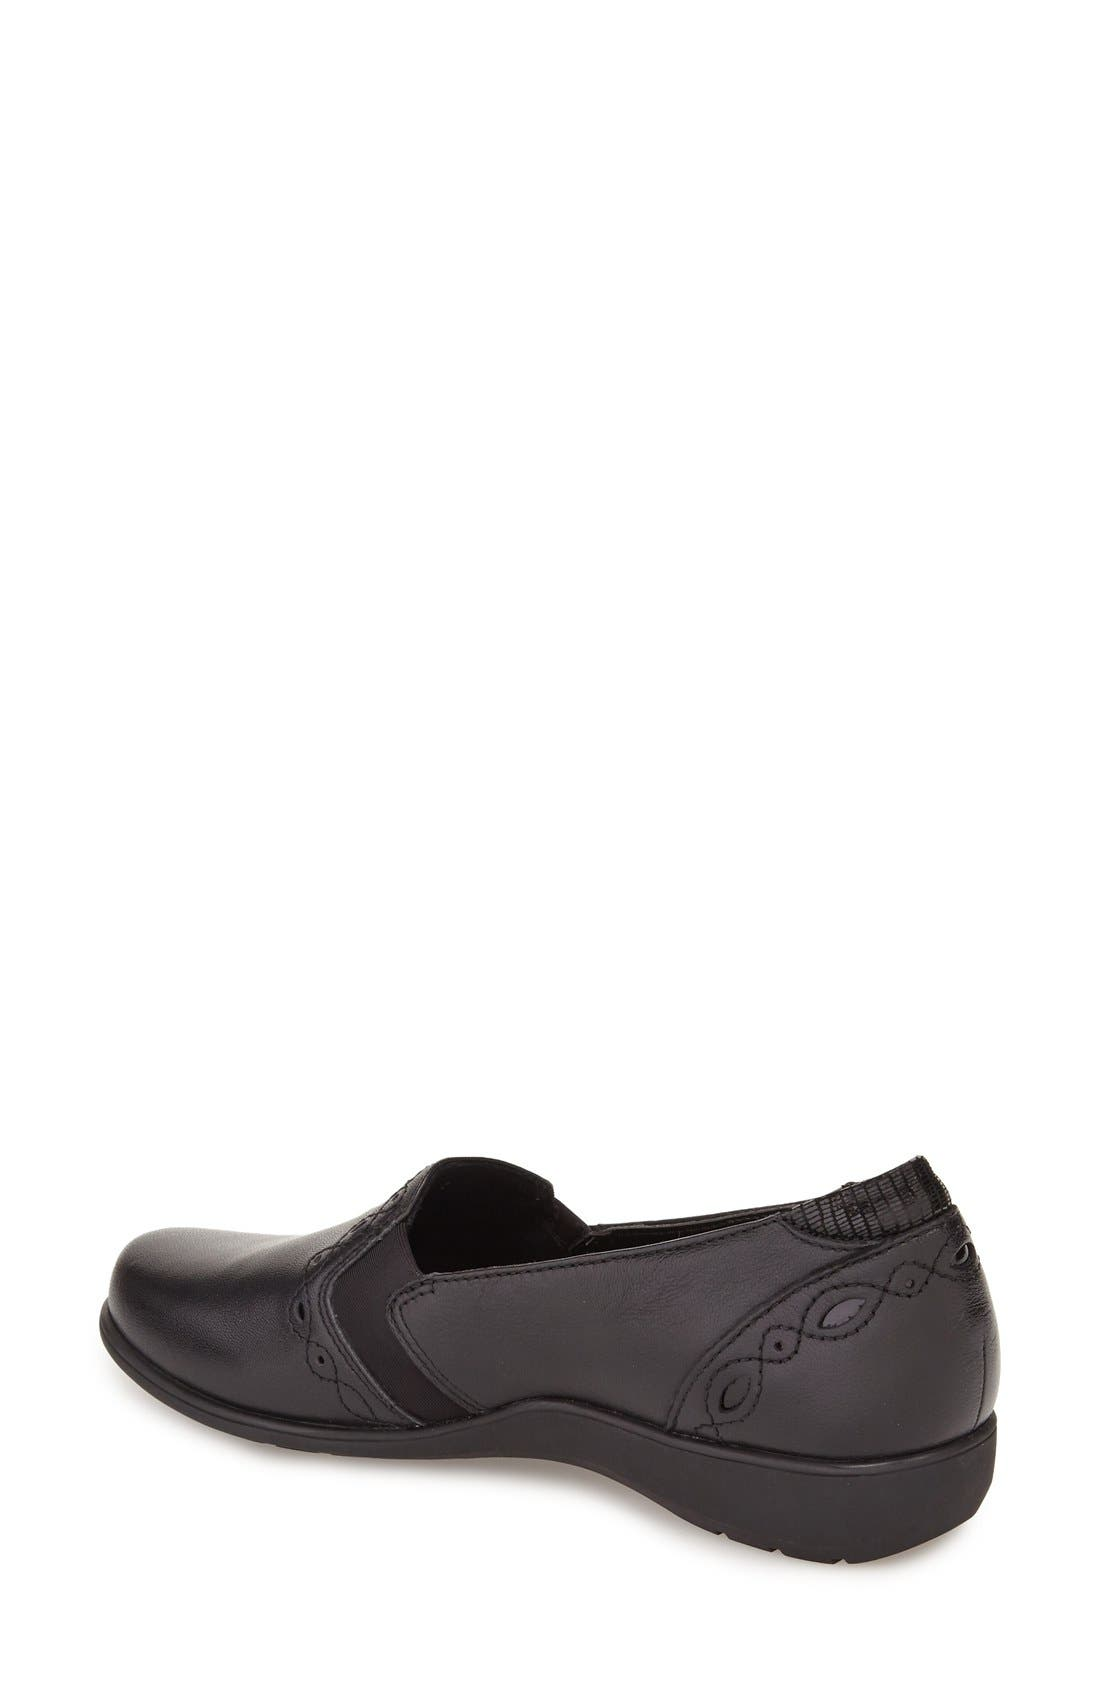 'Adalyn' Loafer,                             Alternate thumbnail 2, color,                             BLACK LEATHER